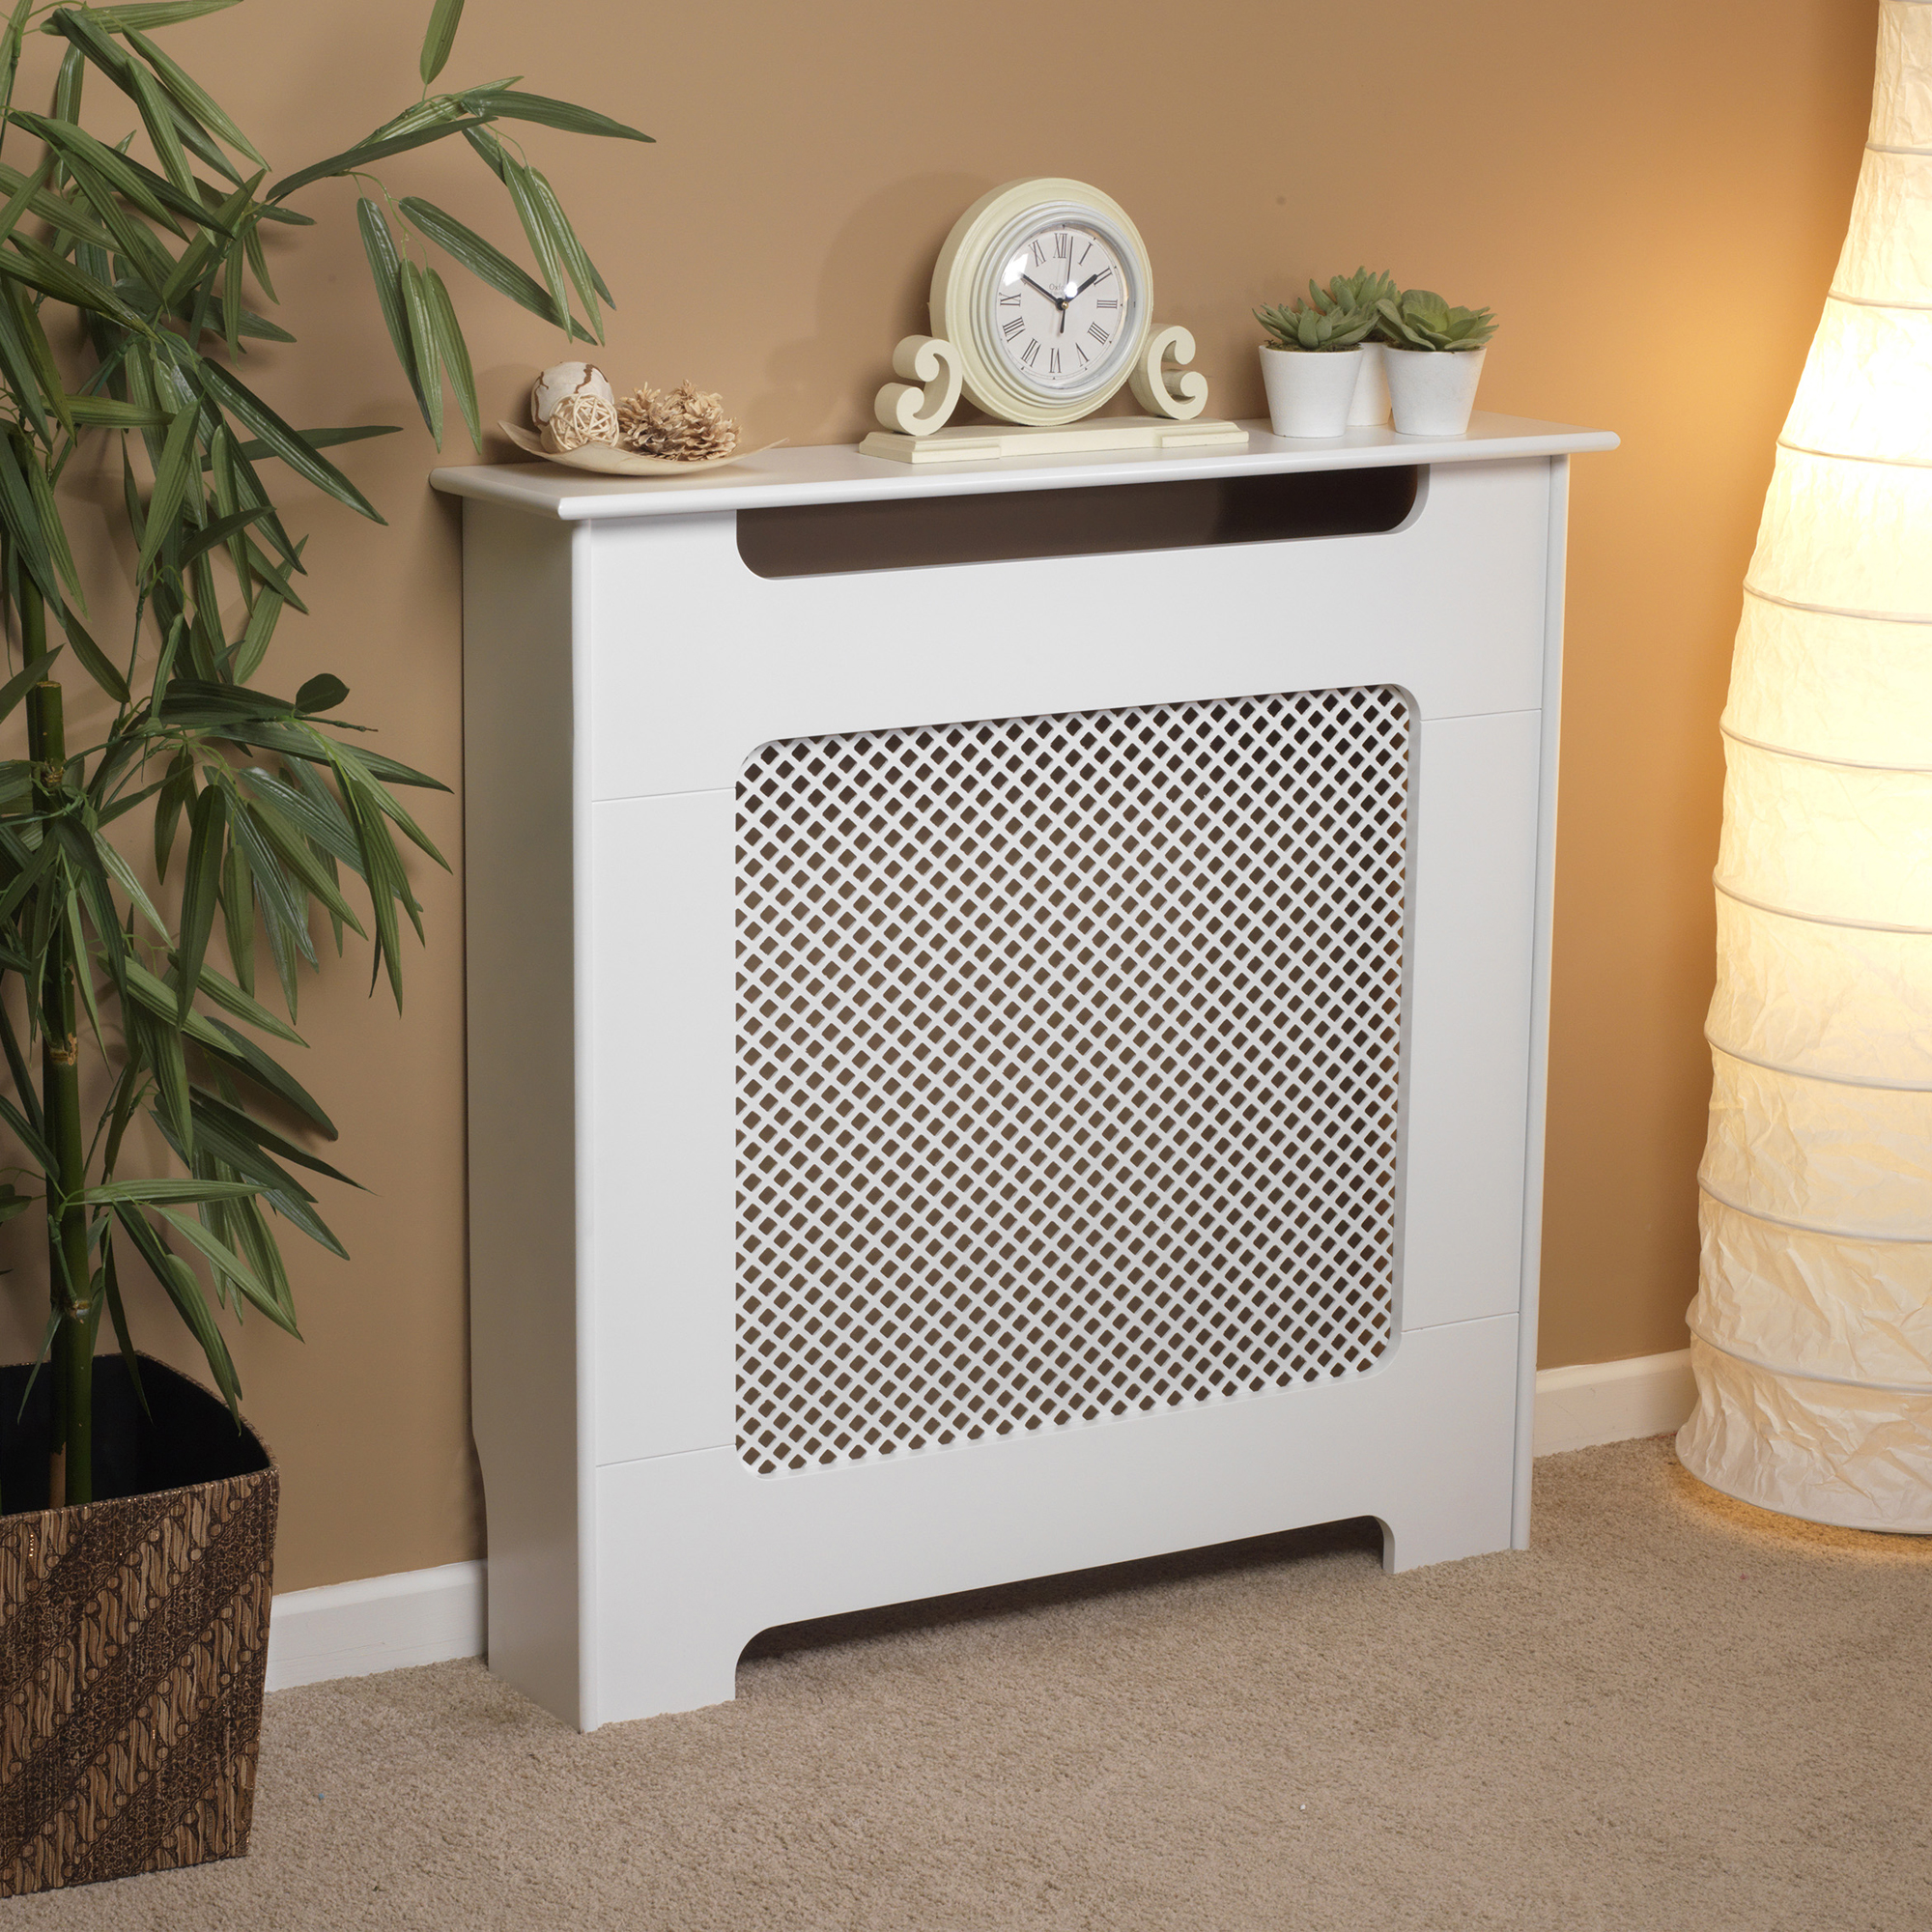 Beldray Eh1840stk Wooden Radiator Cover 100 Fsc Small White Satin Finish No1brands4you